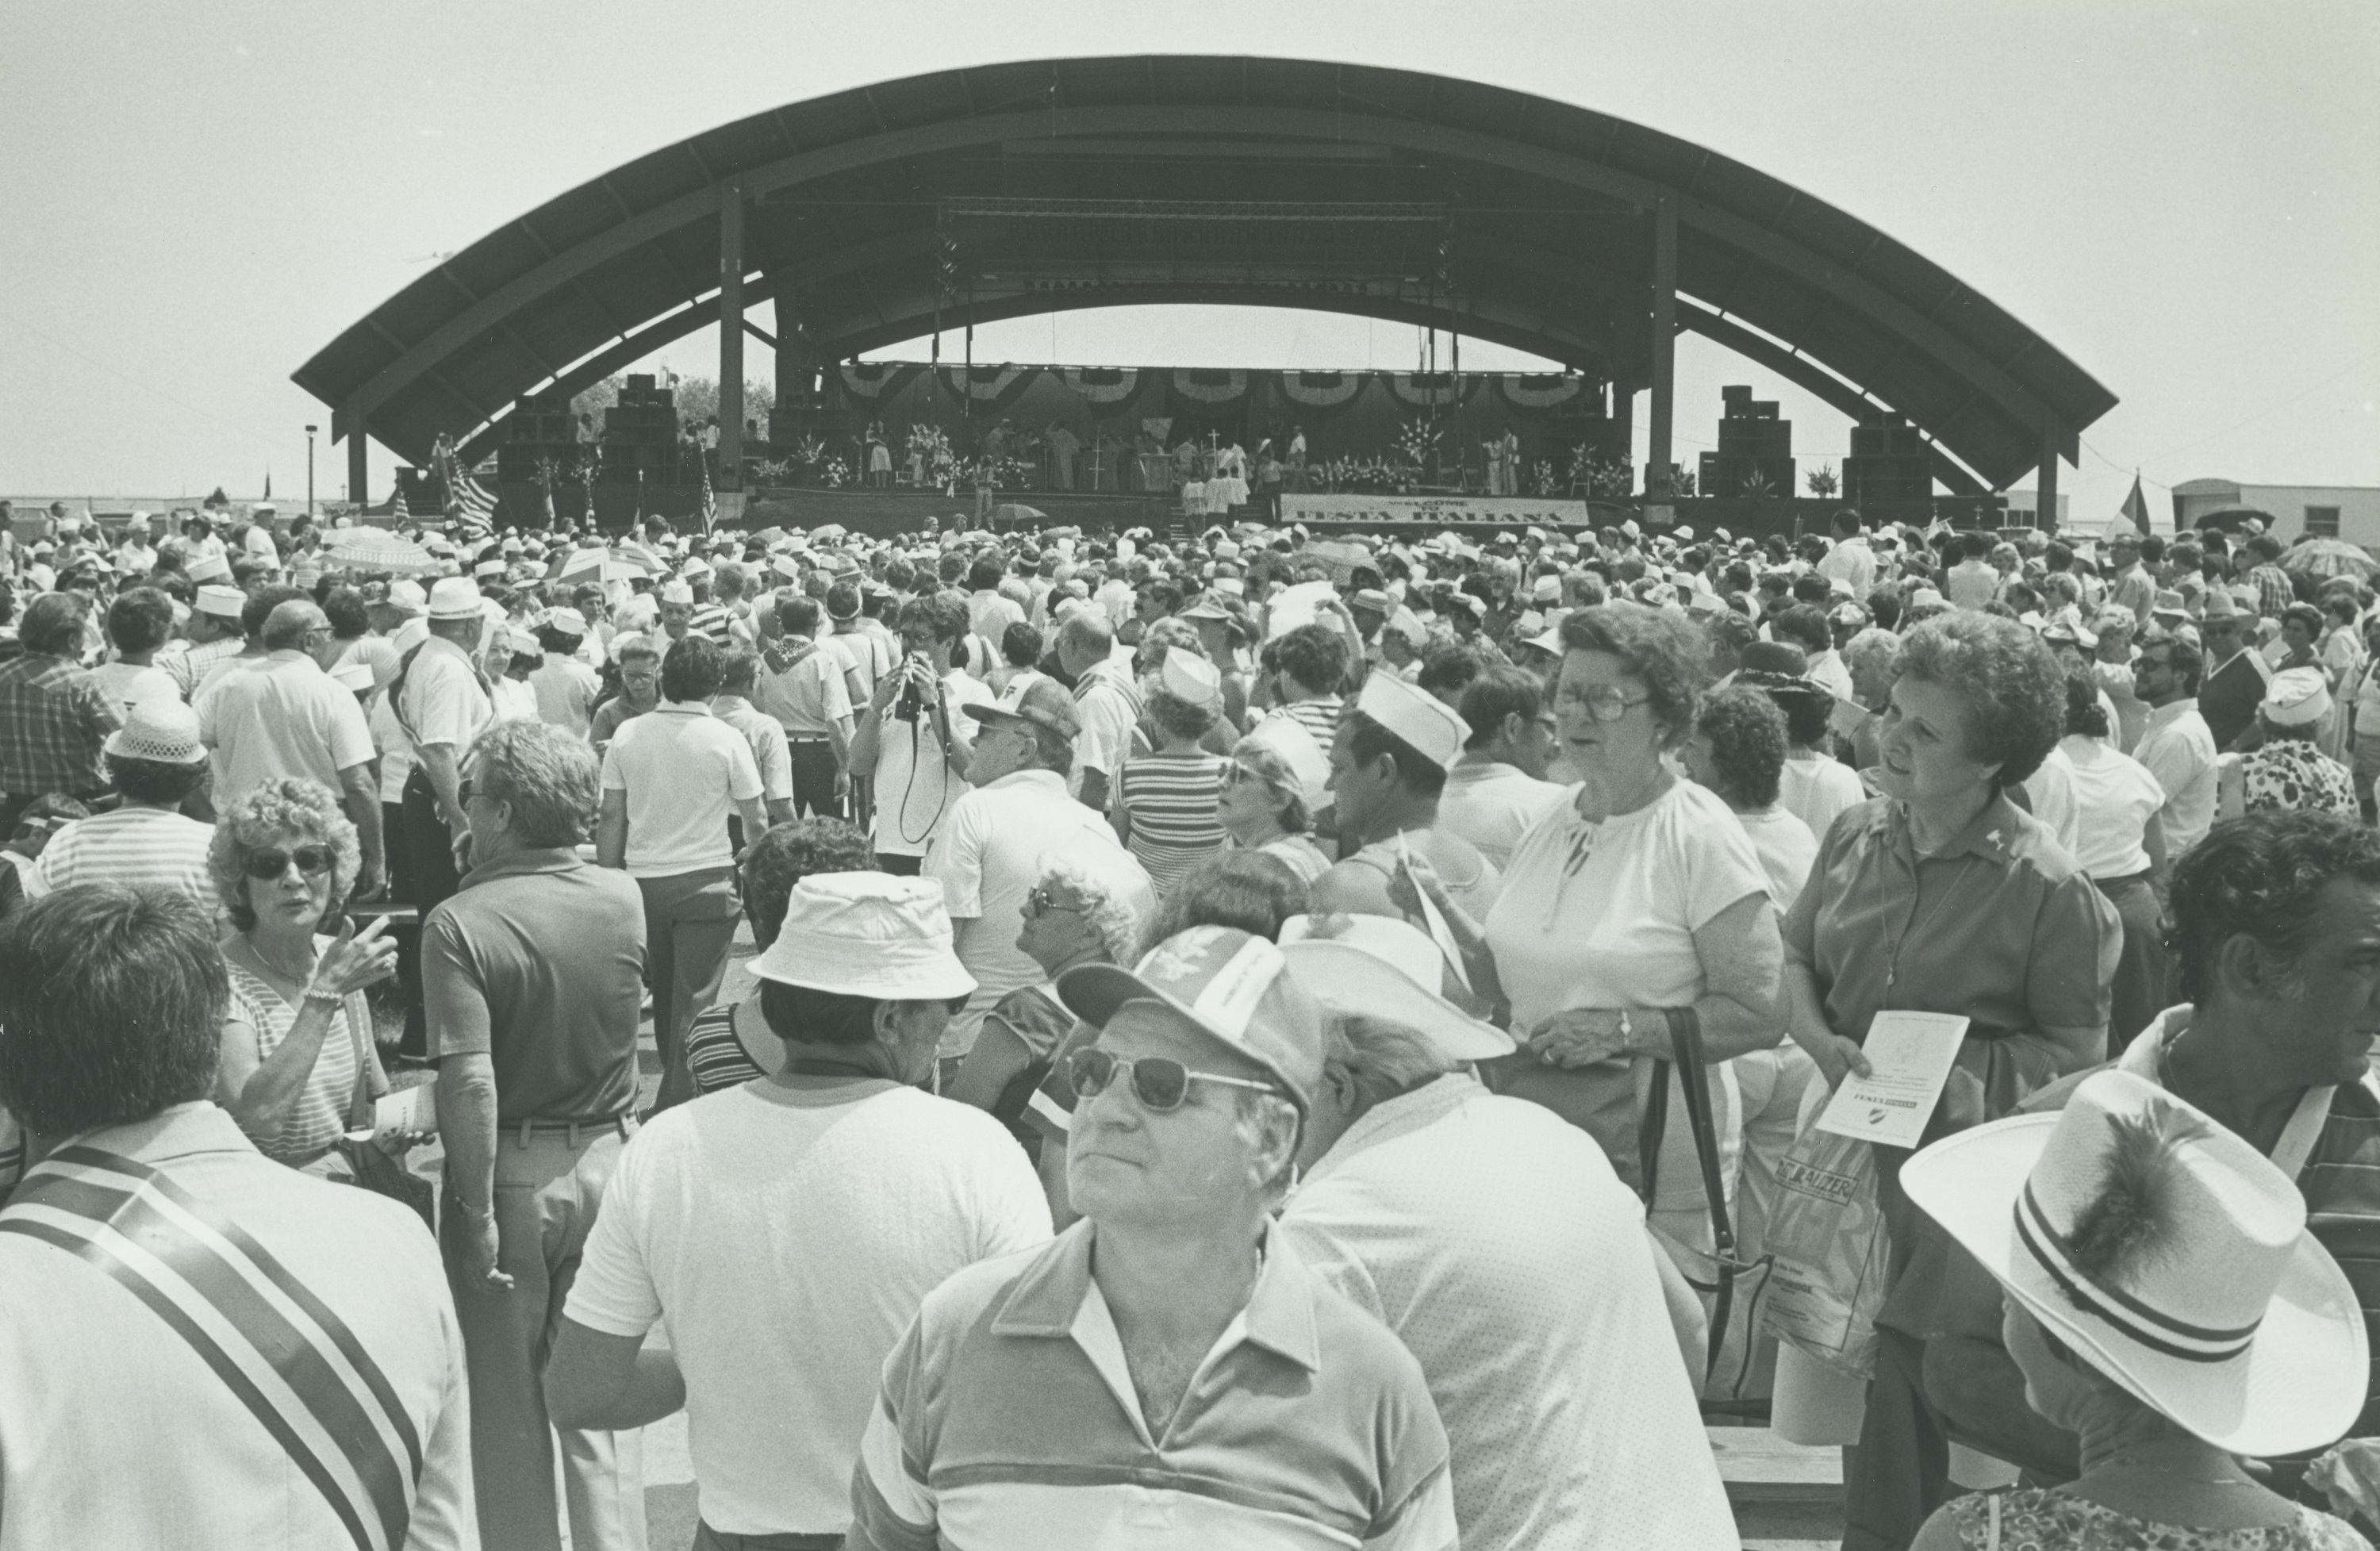 <table class=&quot;lightbox&quot;><tr><td colspan=2 class=&quot;lightbox-title&quot;>Mass at Festa Italiana</td></tr><tr><td colspan=2 class=&quot;lightbox-caption&quot;>A large crowd gathers in front of a stage at Festa Italiana that is set up to hold a Catholic mass in 1983.</td></tr><tr><td colspan=2 class=&quot;lightbox-spacer&quot;></td></tr><tr class=&quot;lightbox-detail&quot;><td class=&quot;cell-title&quot;>Source: </td><td class=&quot;cell-value&quot;>From the Historic Photo Collection of the Milwaukee Public Library. Reprinted with permission. <br /><a href=&quot;http://content.mpl.org/cdm/singleitem/collection/HstoricPho/id/5621/rec/40&quot; target=&quot;_blank&quot;>Milwaukee Public Library</a></td></tr><tr class=&quot;filler-row&quot;><td colspan=2>&nbsp;</td></tr></table>